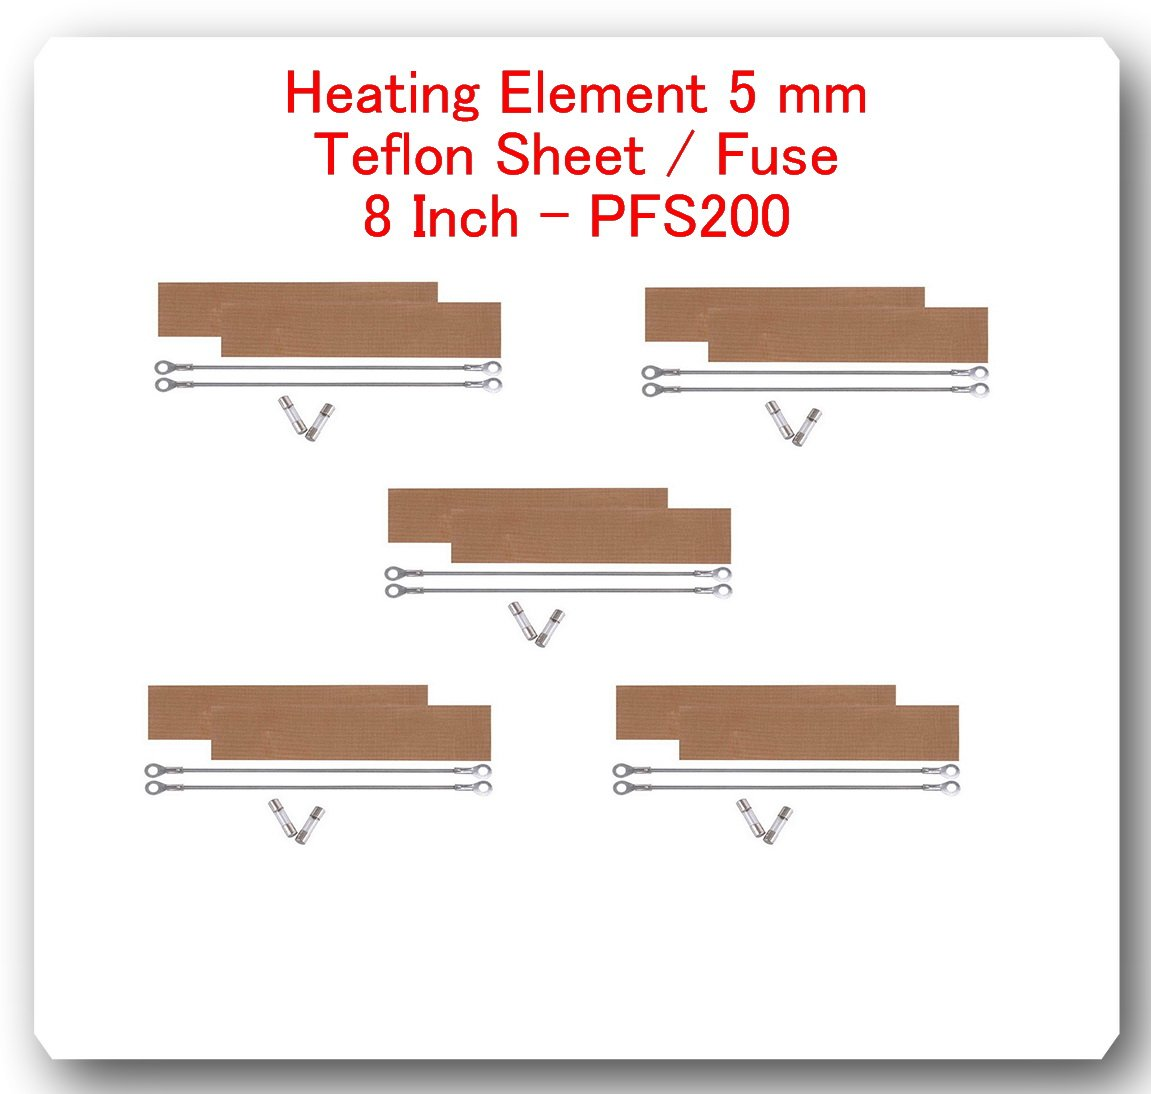 (10 Kits) Replacement Elements for Impulse Sealer PFS-200 8''(10 Heating Elements 5 mm+ 10 Teflon Sheets & 10 Fuses) by SAP